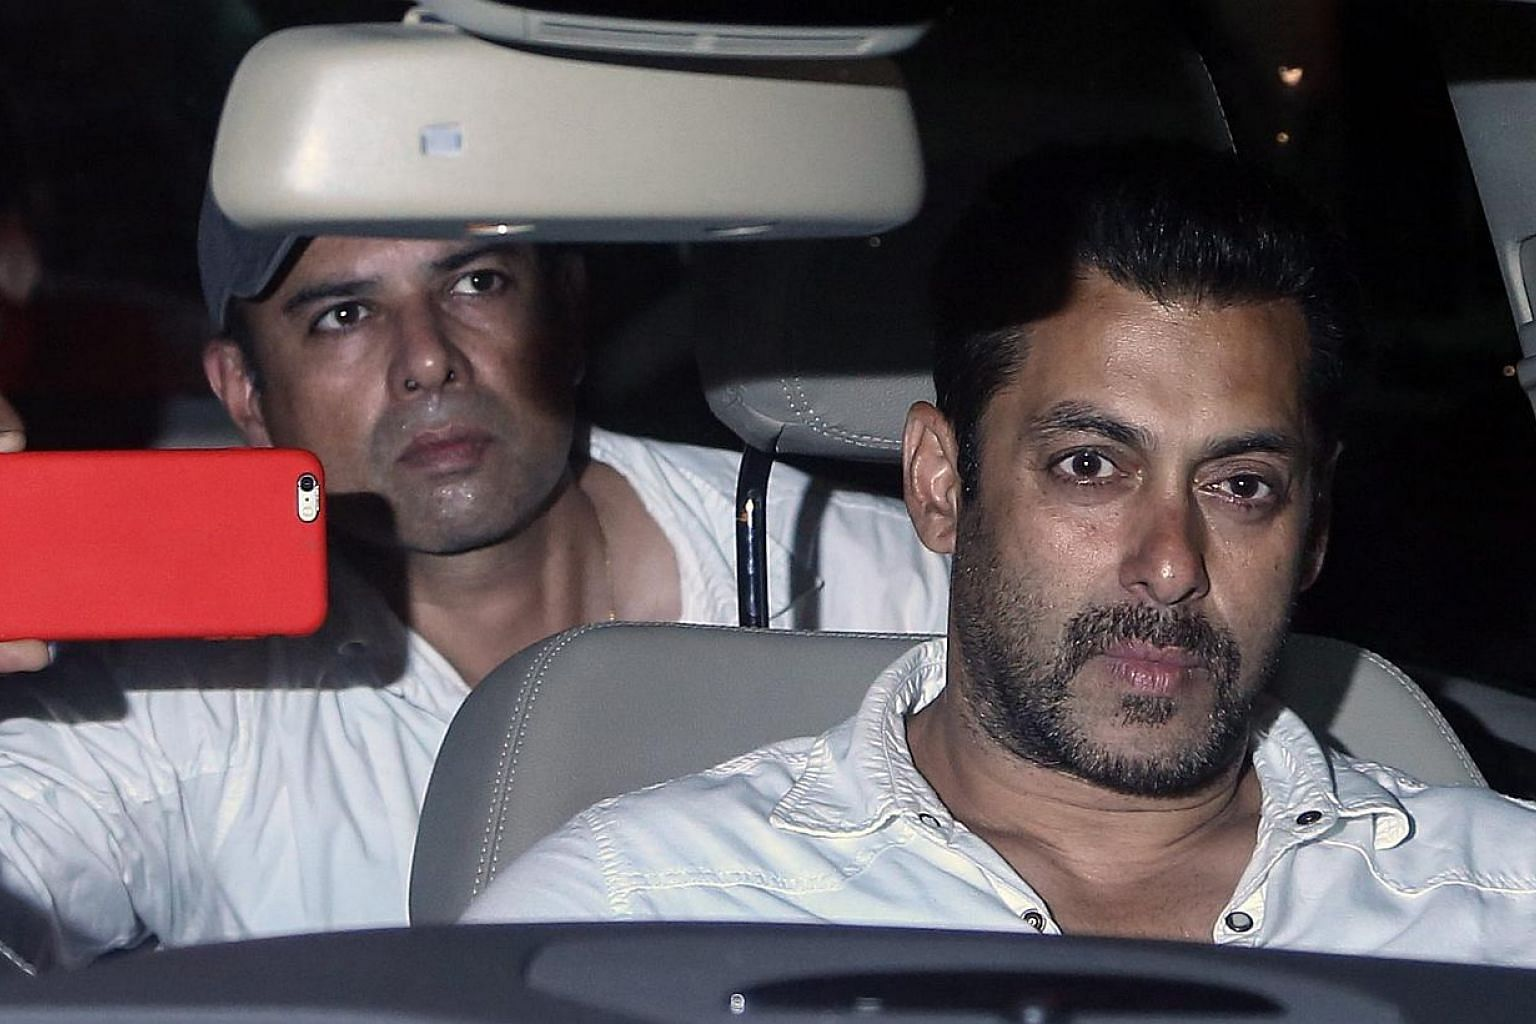 Salman Khan leaving court after getting two days' interim bail from Bombay High Court, in Mumbai, India, on May 6, 2015. -- PHOTO: EPA